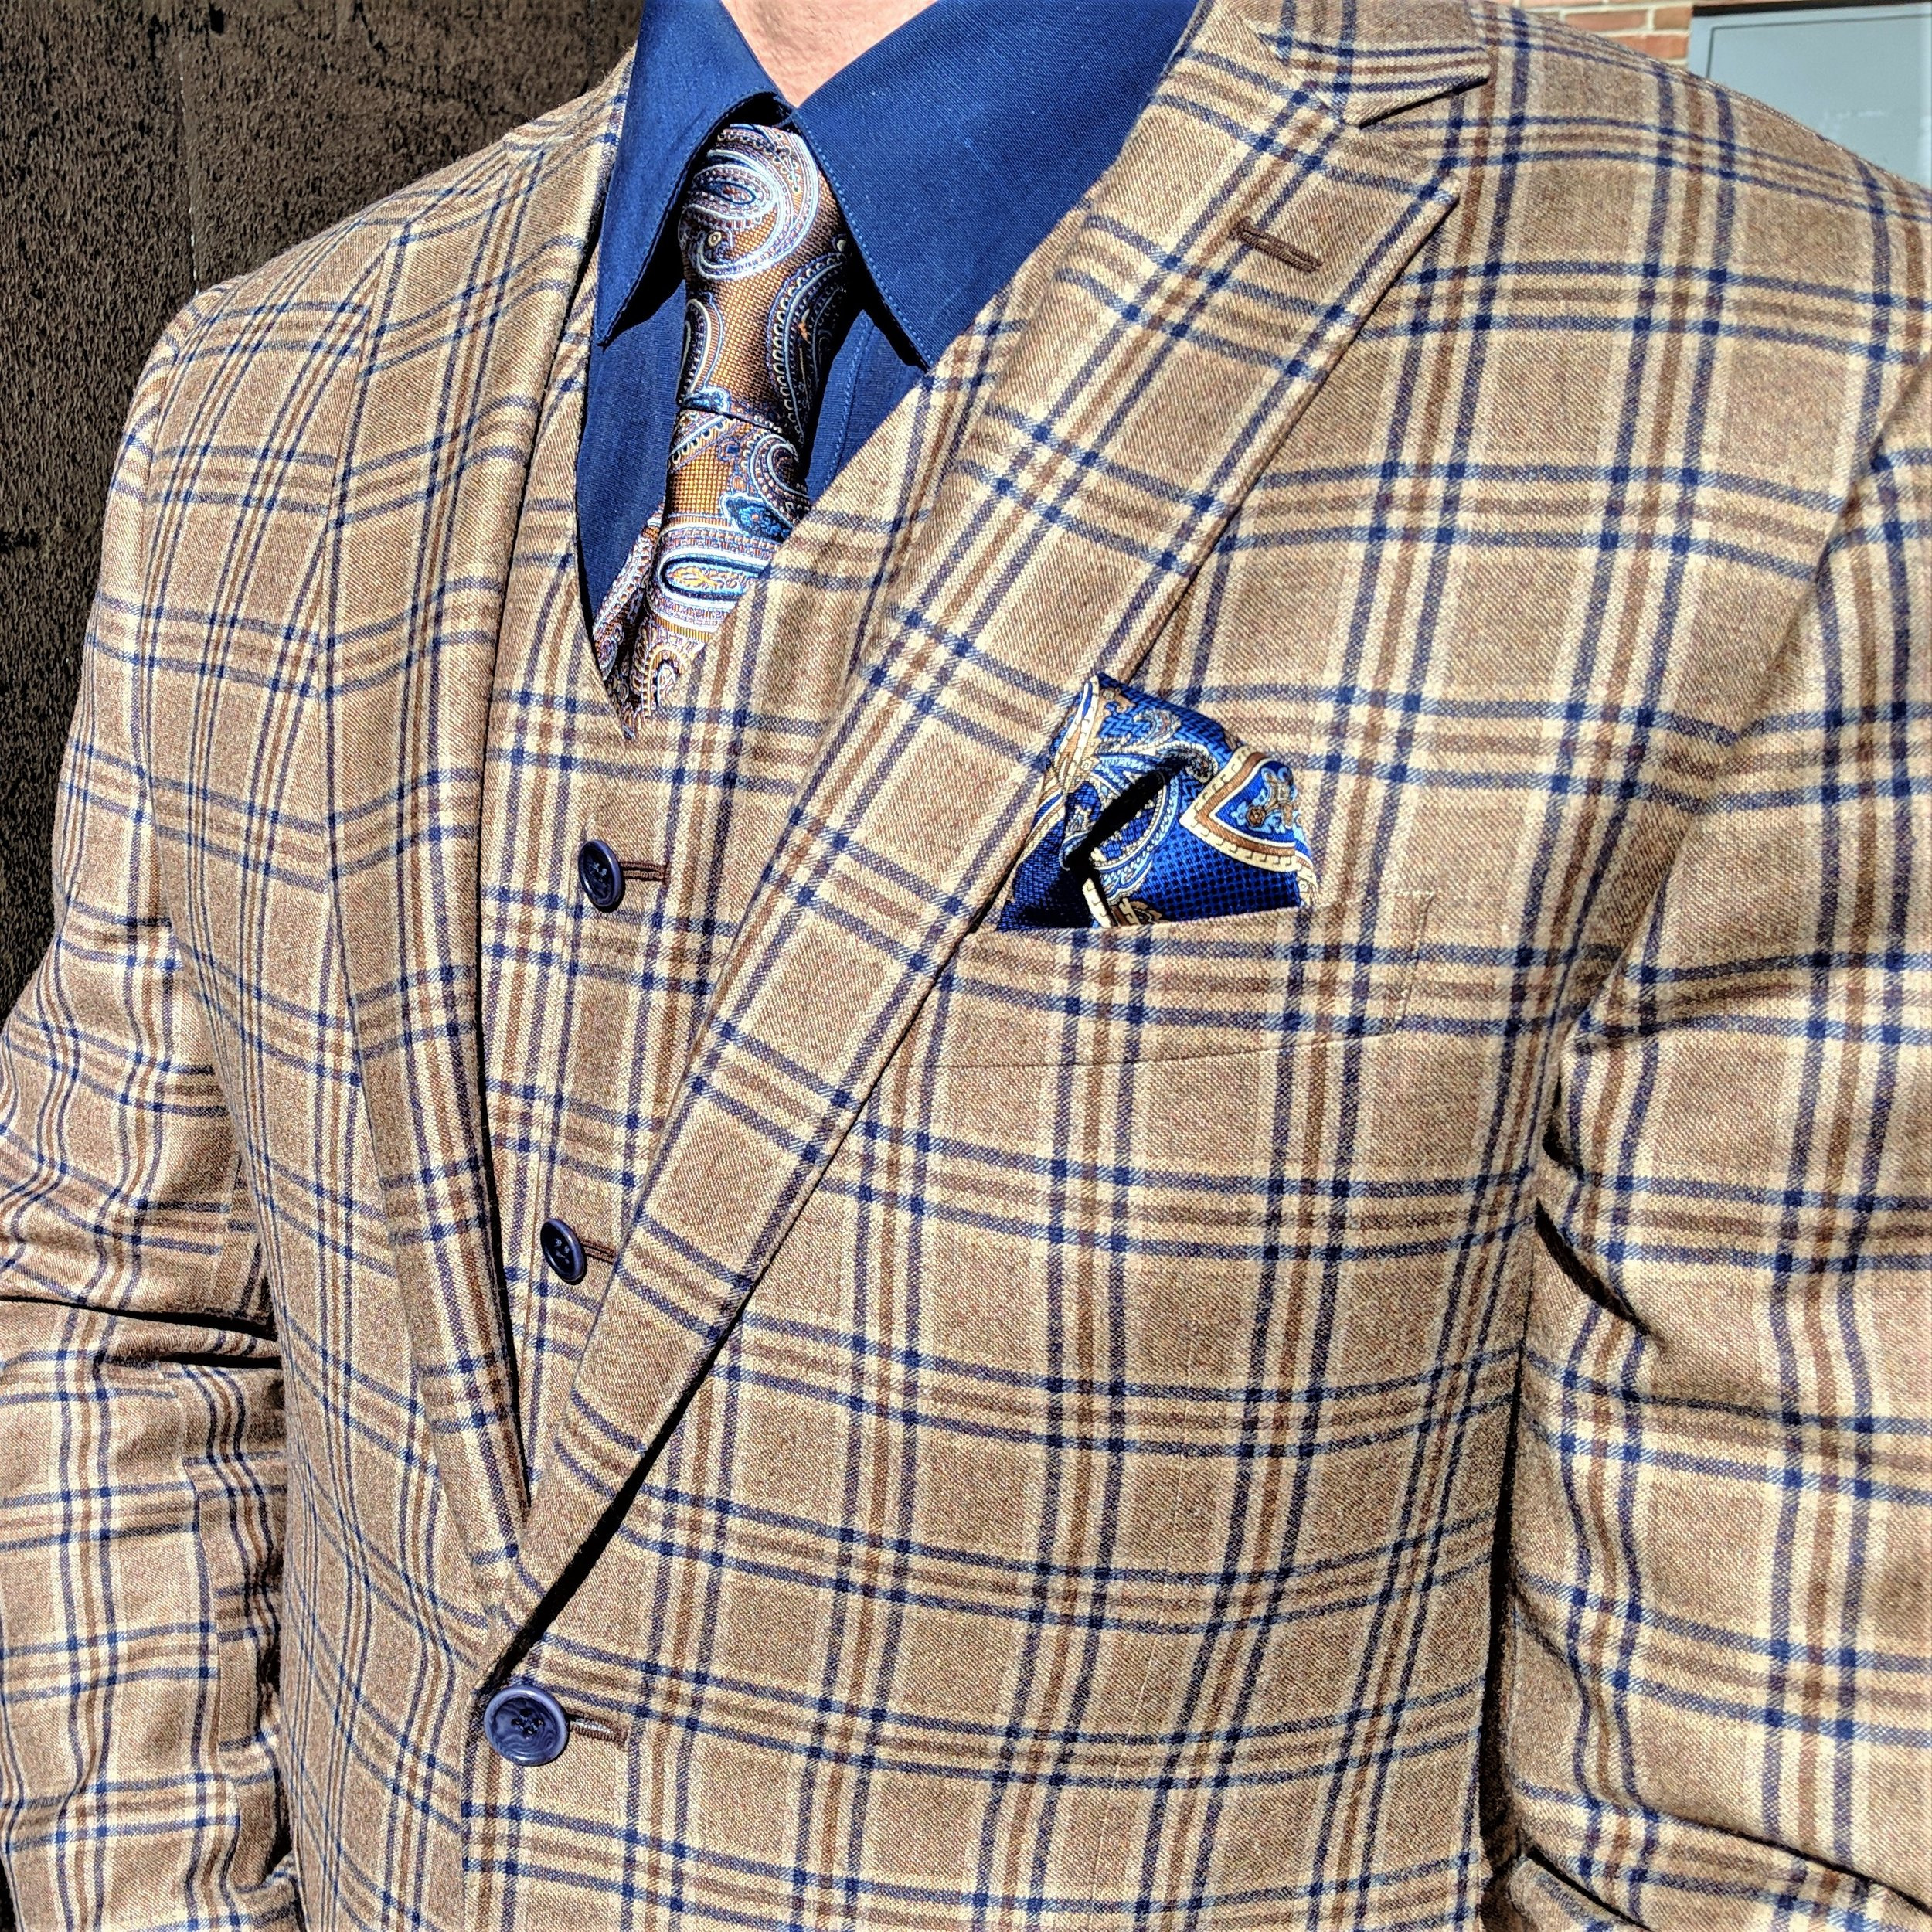 troy's suit 2 (2019_04_09 01_49_28 UTC).jpg